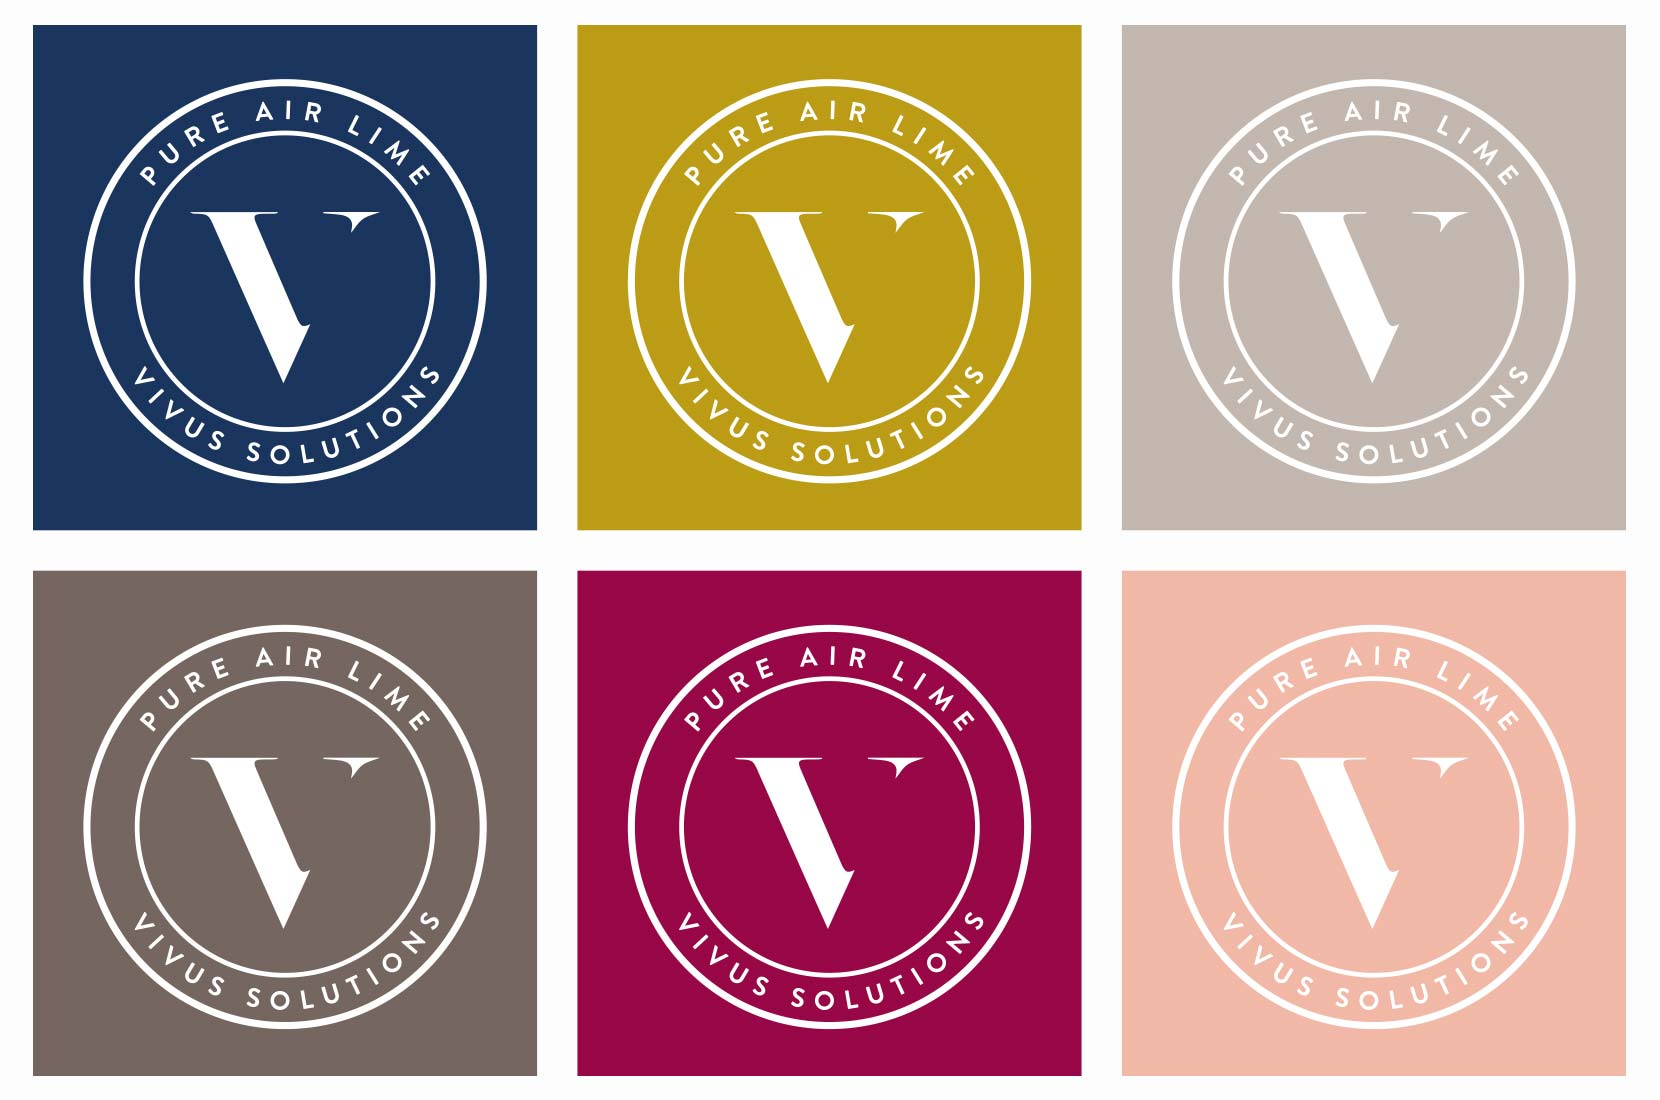 Vivus Solutions Colour Palette